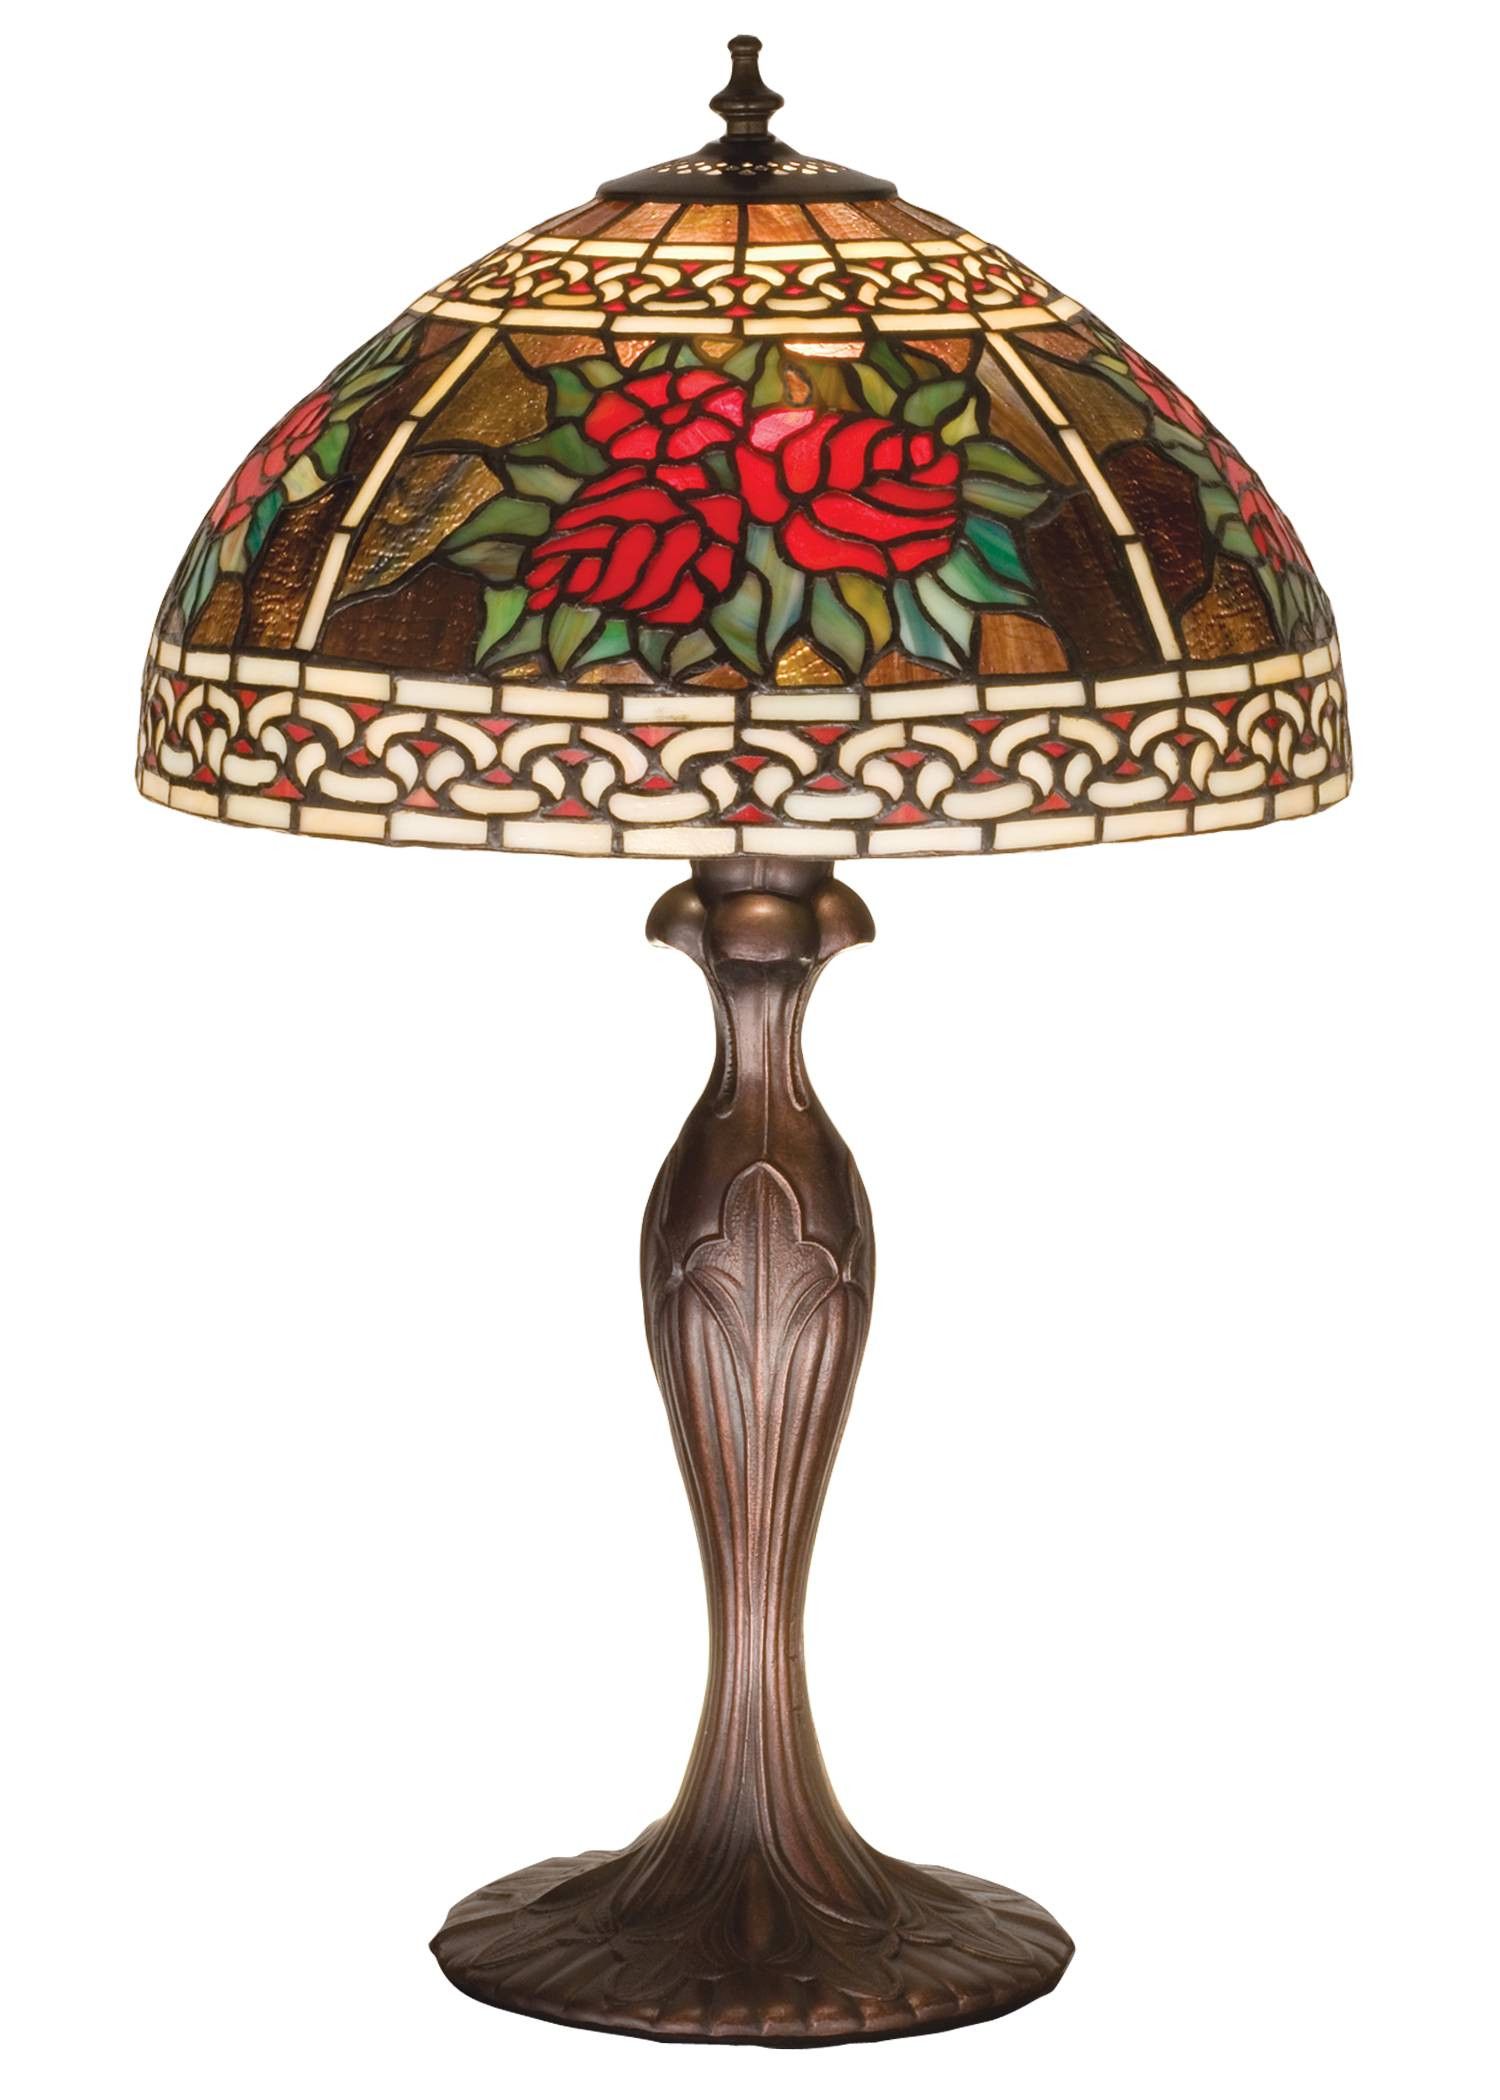 meyda tiffany roses and scrolls table lamp antique finish accent lamps entry room teal coffee tray girls desk grill tools black dining chairs counter height rectangular entryway